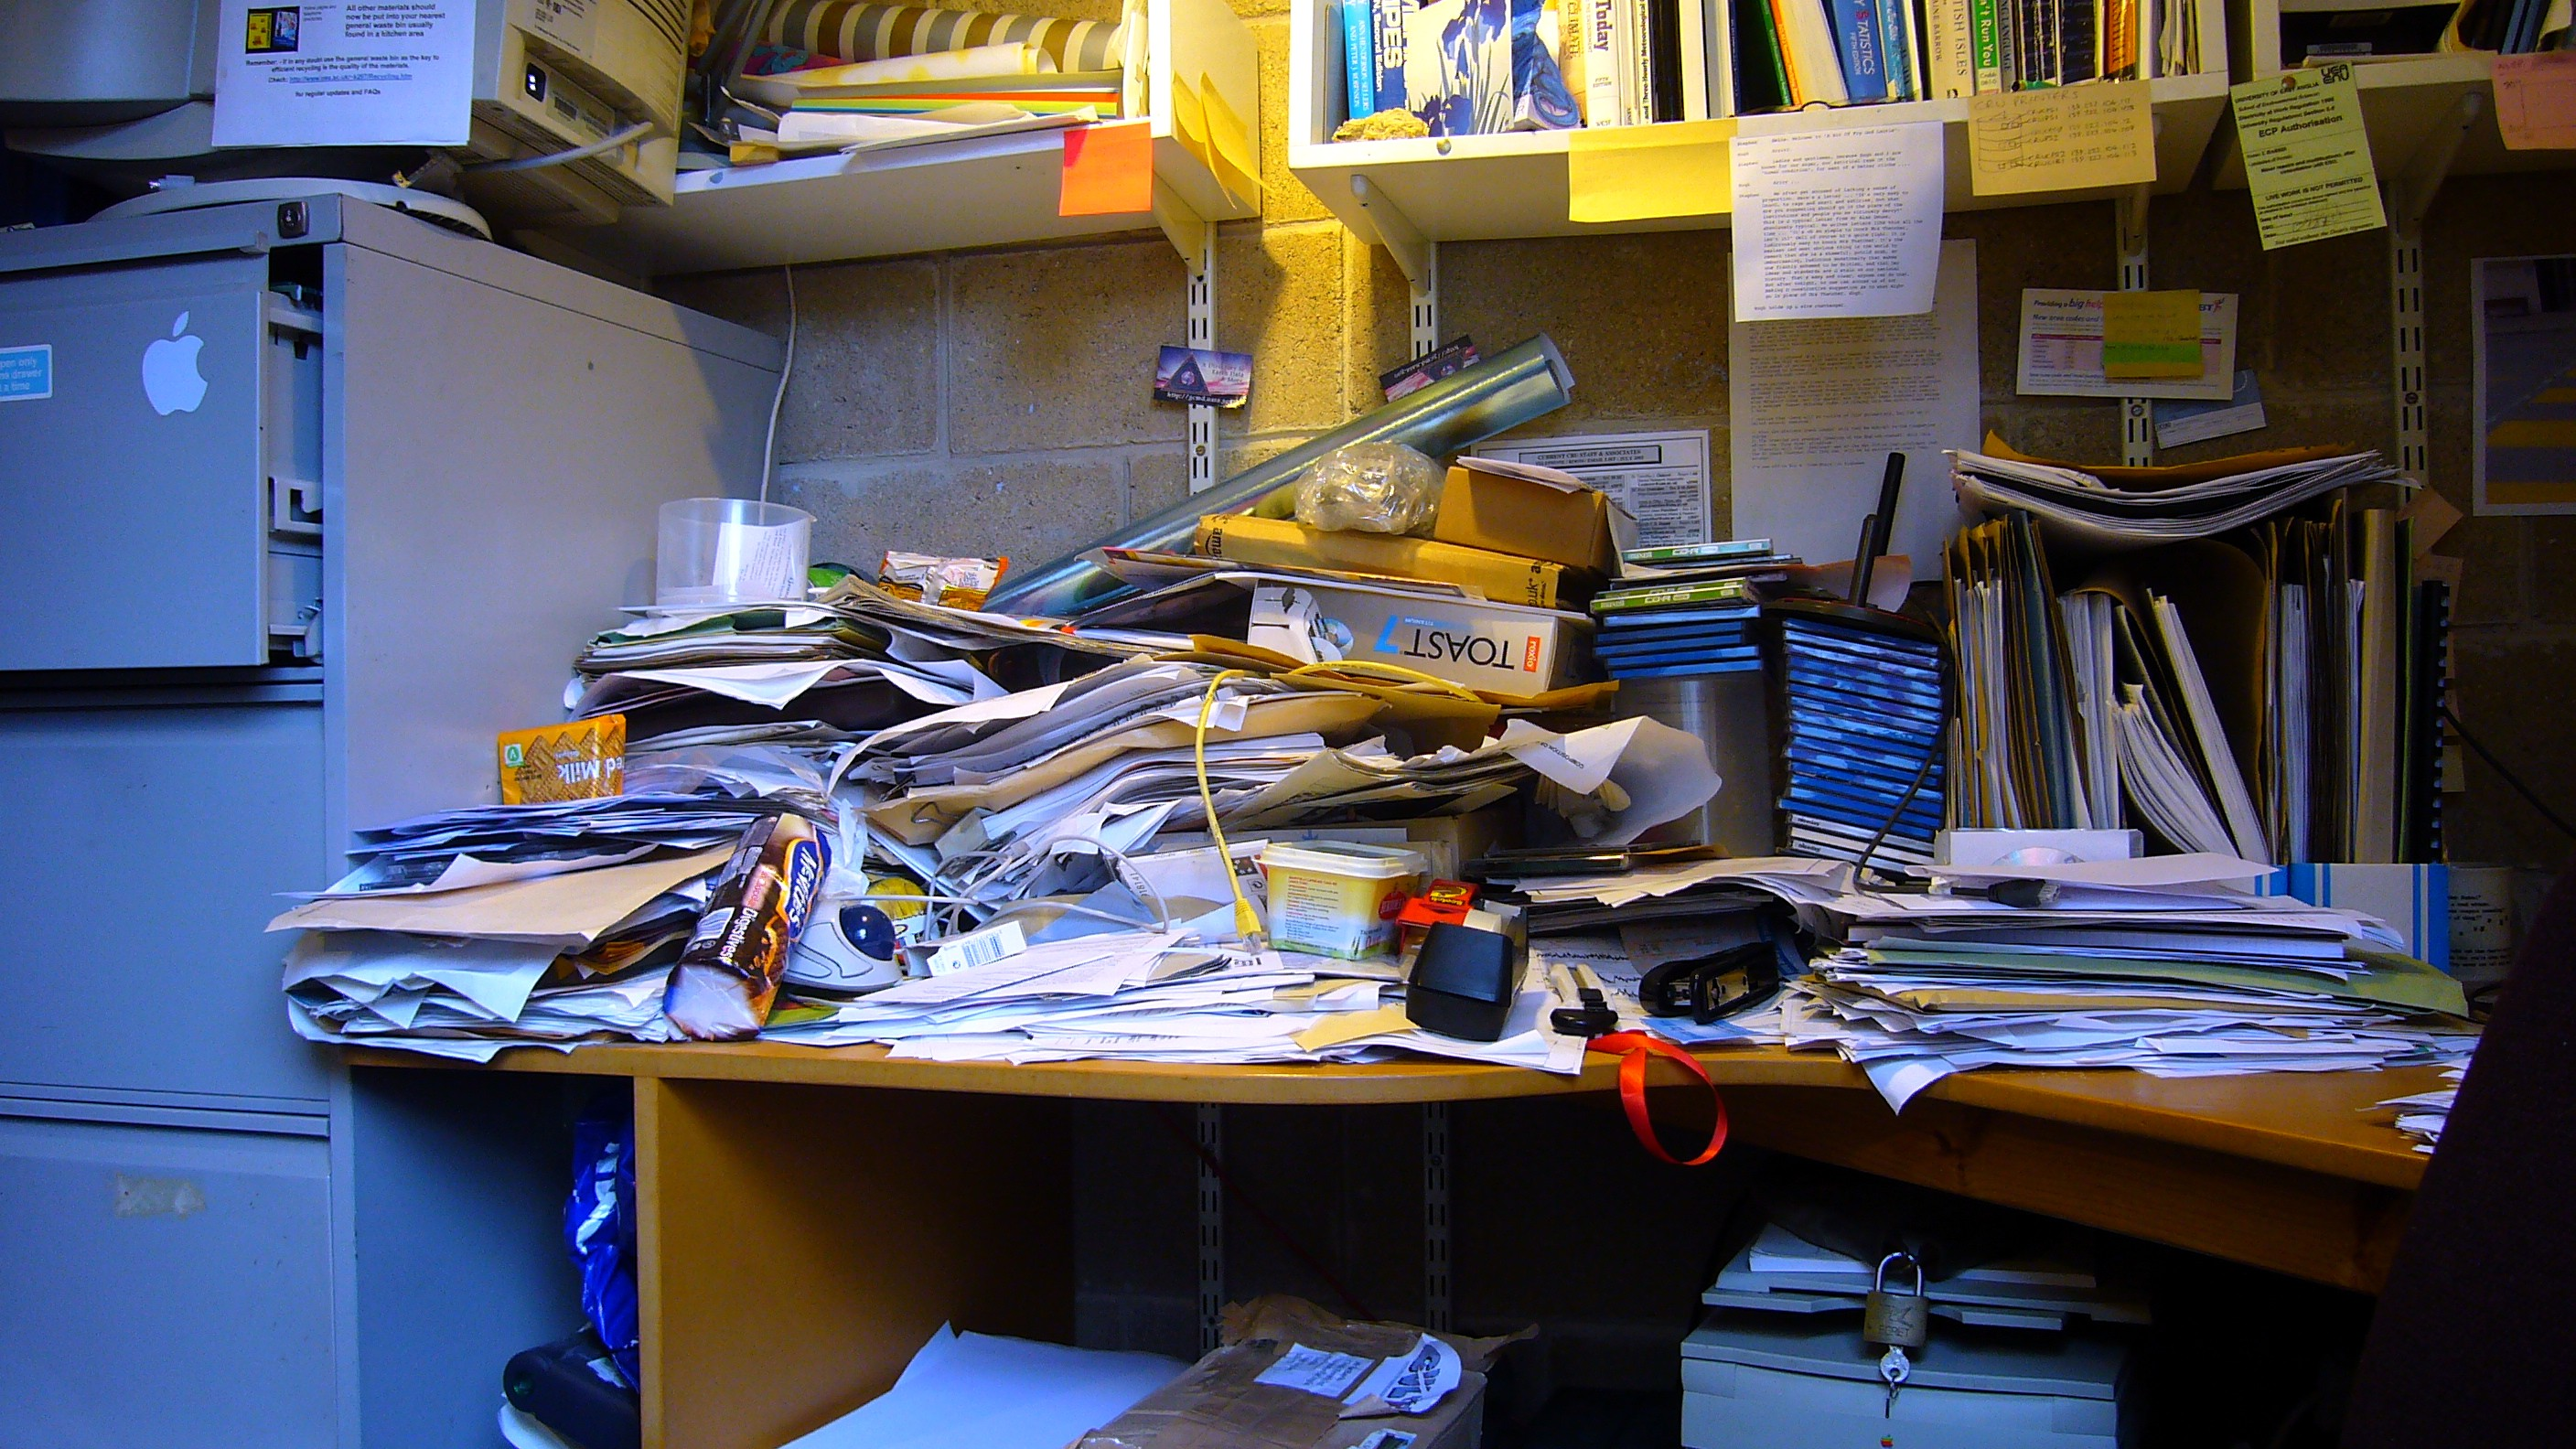 Messy Desk Harryharris 300782460 Bafaba2776 O